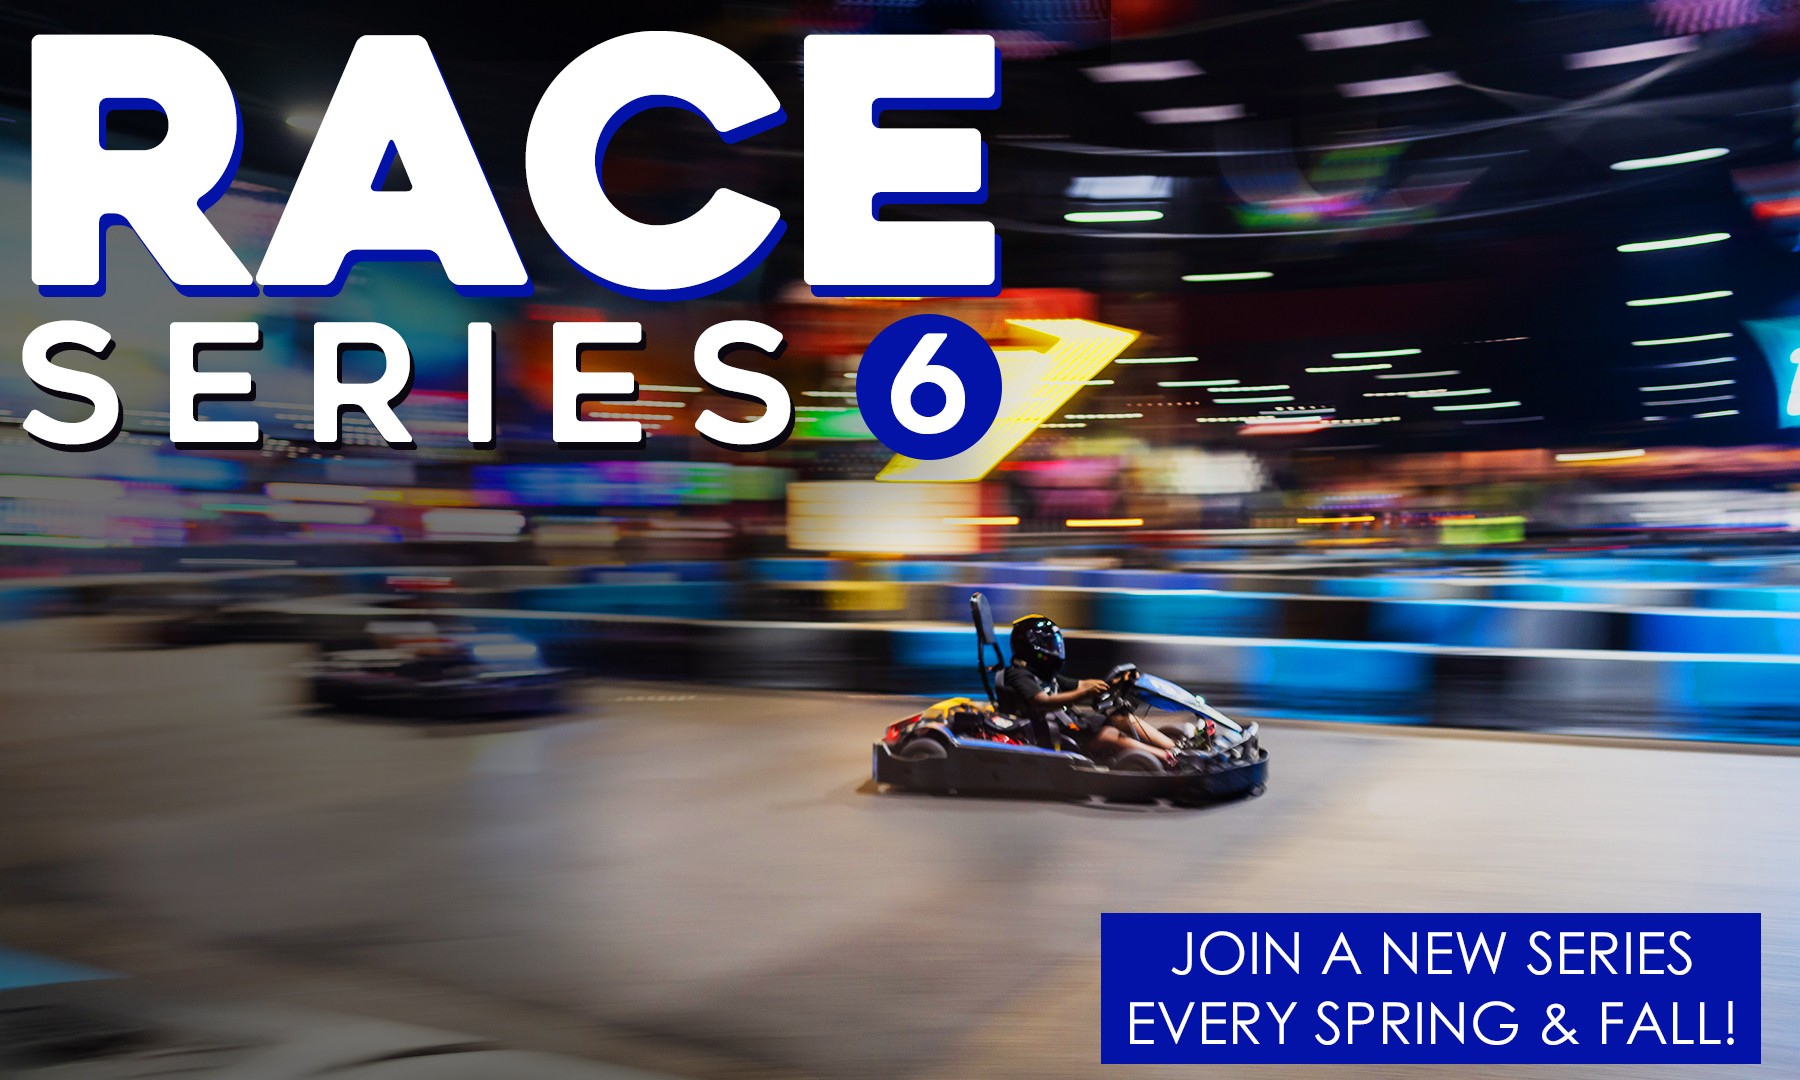 Race Series 6 starts Spring or Fall